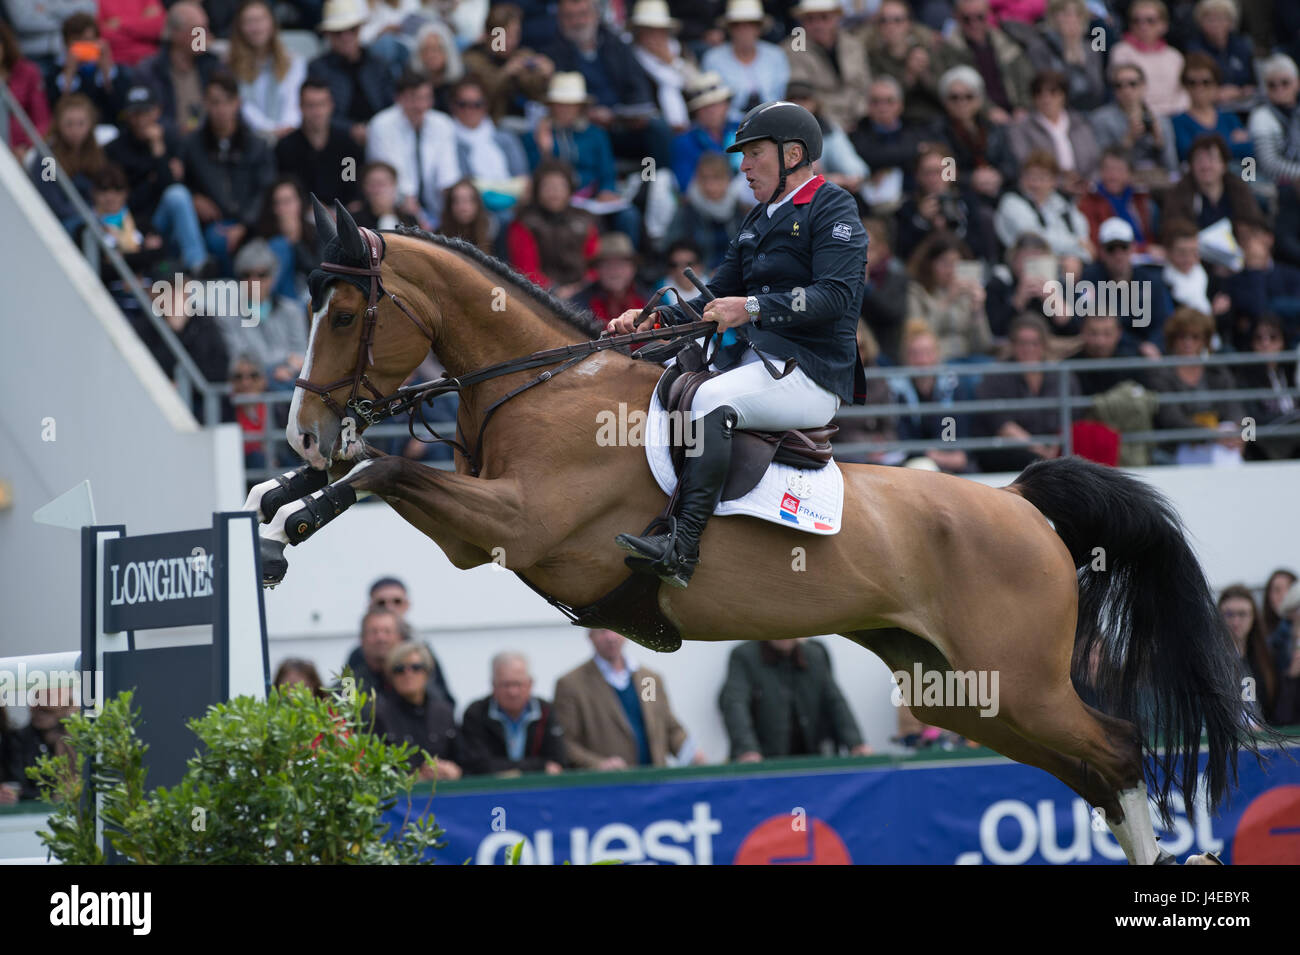 La Baule, France. 12th May, 2017. Roger Yves Bost riding Sangria du Coty during the Nations Cup in La Baule, France - Stock Image